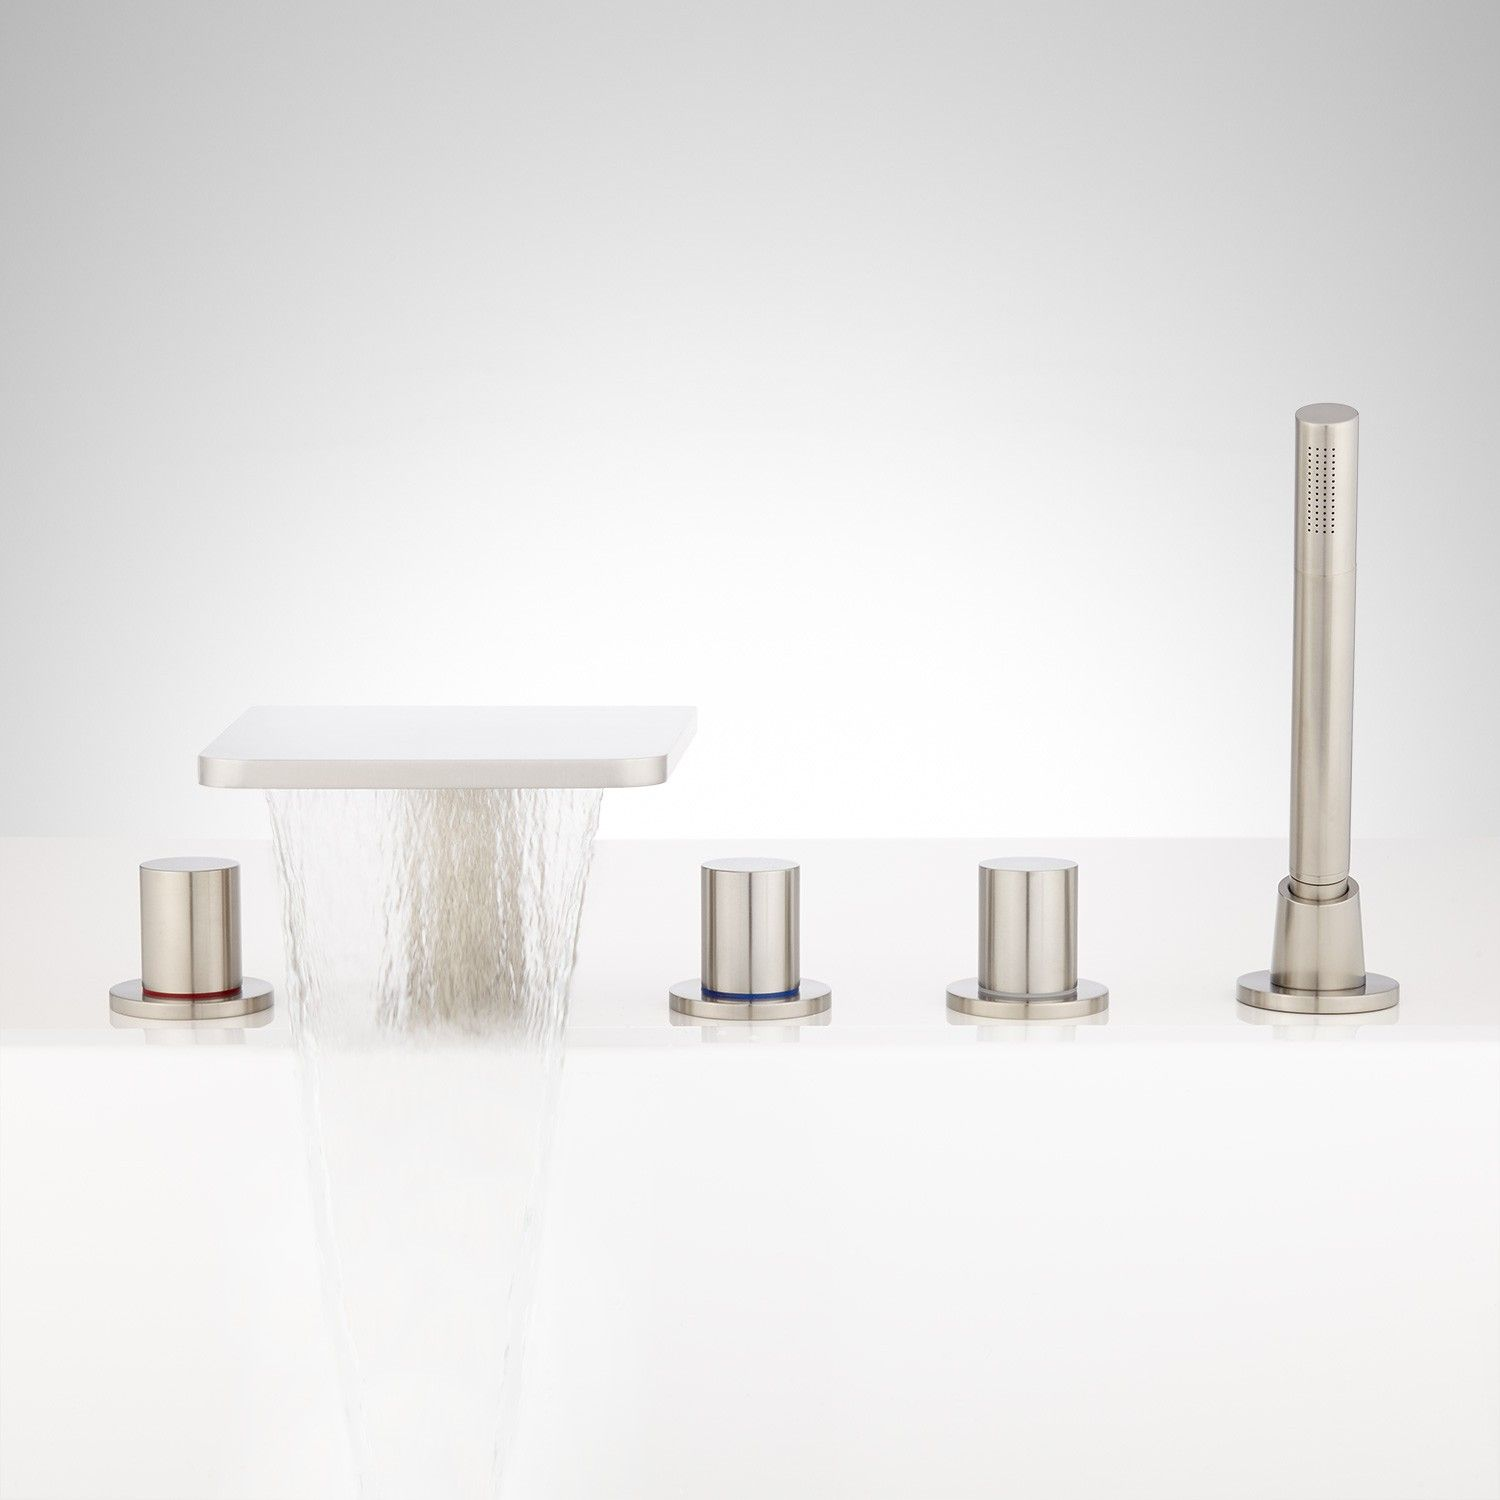 Knox Roman Waterfall Tub Faucet and Hand Shower   Brushed nickel and ...